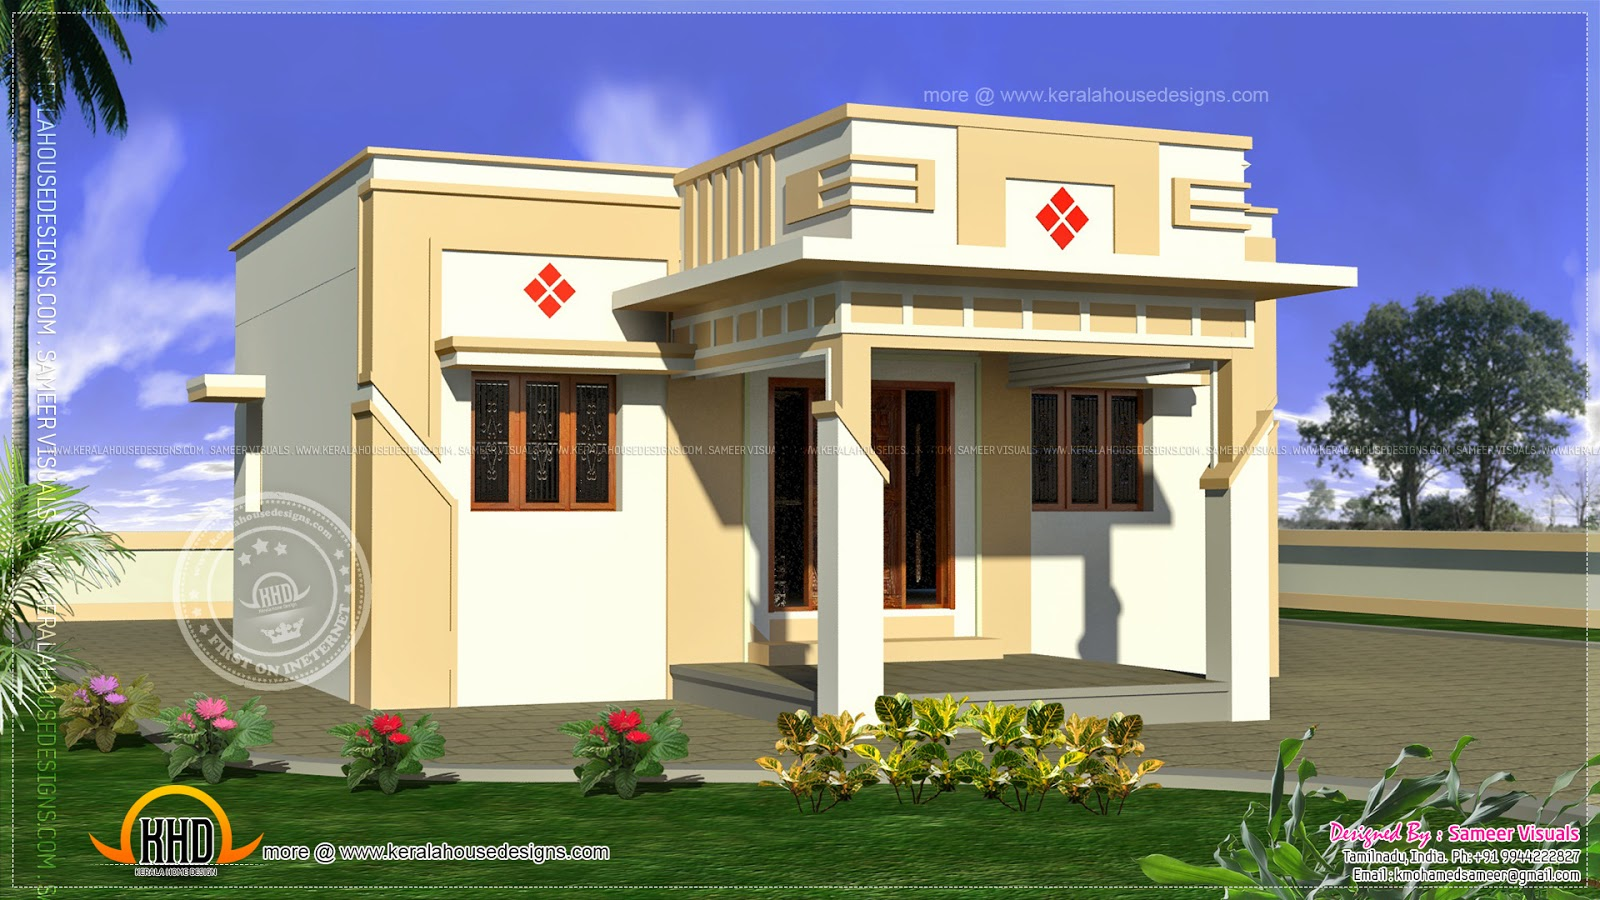 Low cost tamilnadu house kerala home design and floor plans for Single floor house designs tamilnadu